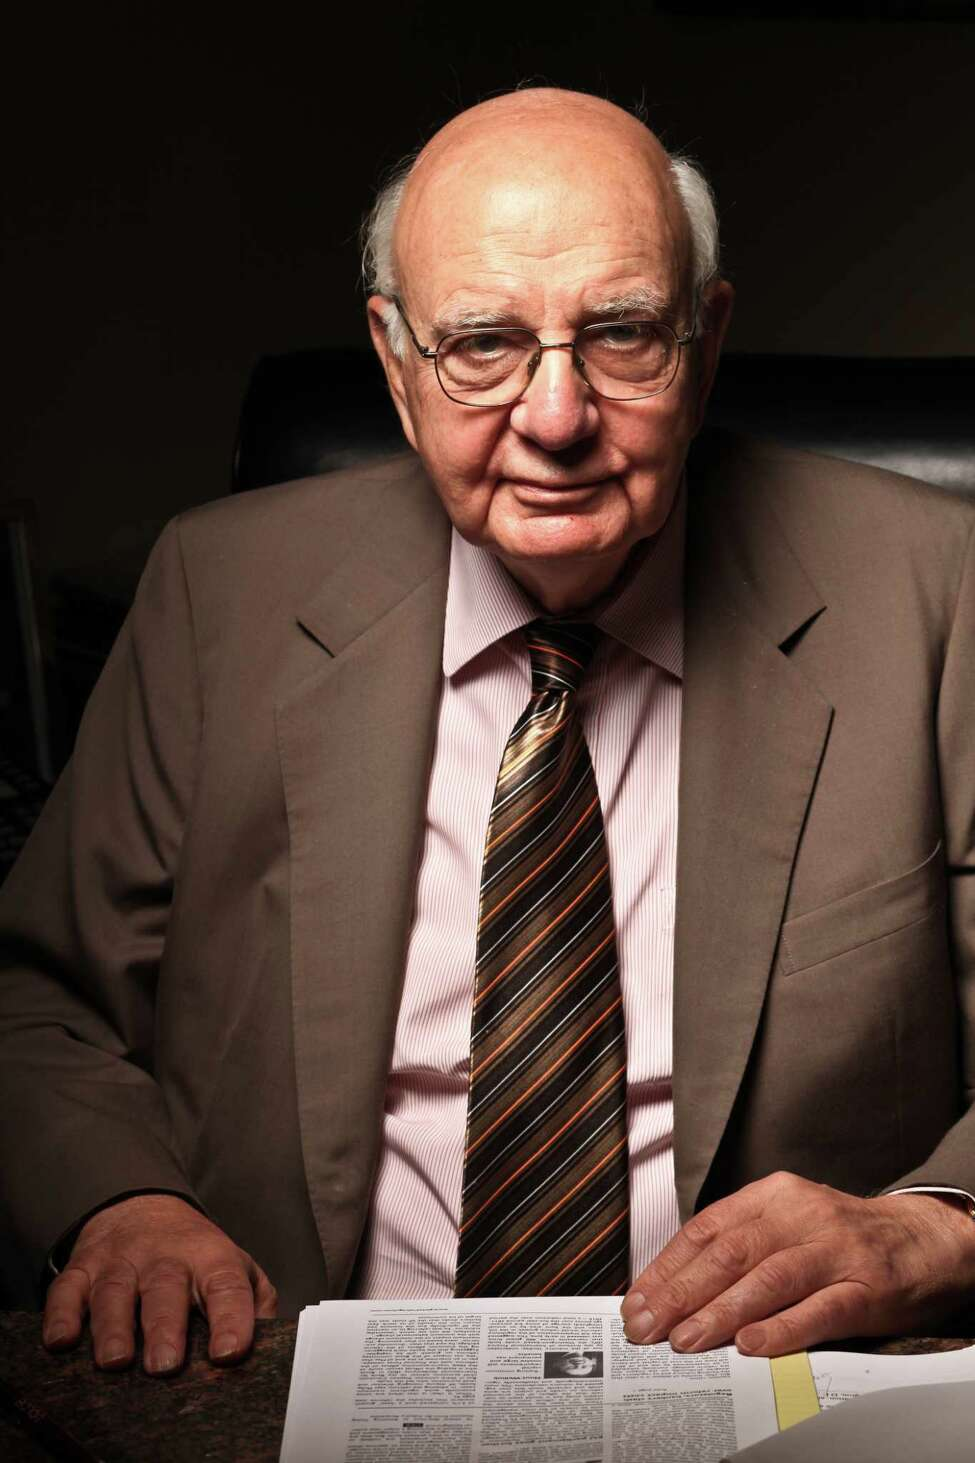 FILE -- Economist and former Federal Reserve Chairman Paul Volcker in his office in New York on June 28, 2010. Volcker, who helped shape American economic policy for more than six decades, most notably by leading the Federal Reservea€™s brute-force campaign to subdue inflation in the late 1970s and early 1980s, died on Sunday, Dec. 8, 2019, in New York. He was 92. (Fred R. Conrad/The New York Times)